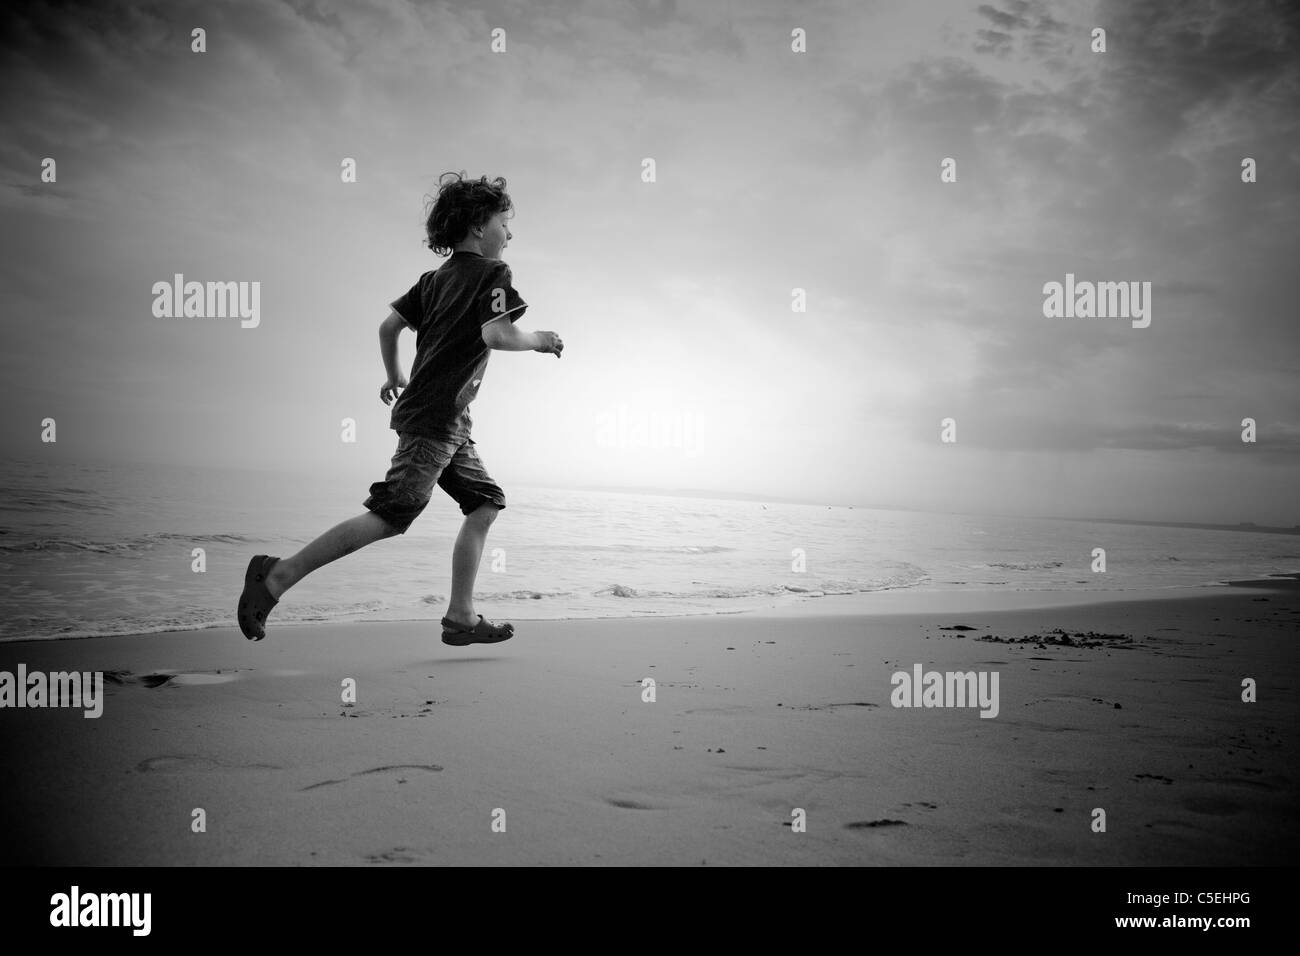 Boy runs on a beach - Stock Image